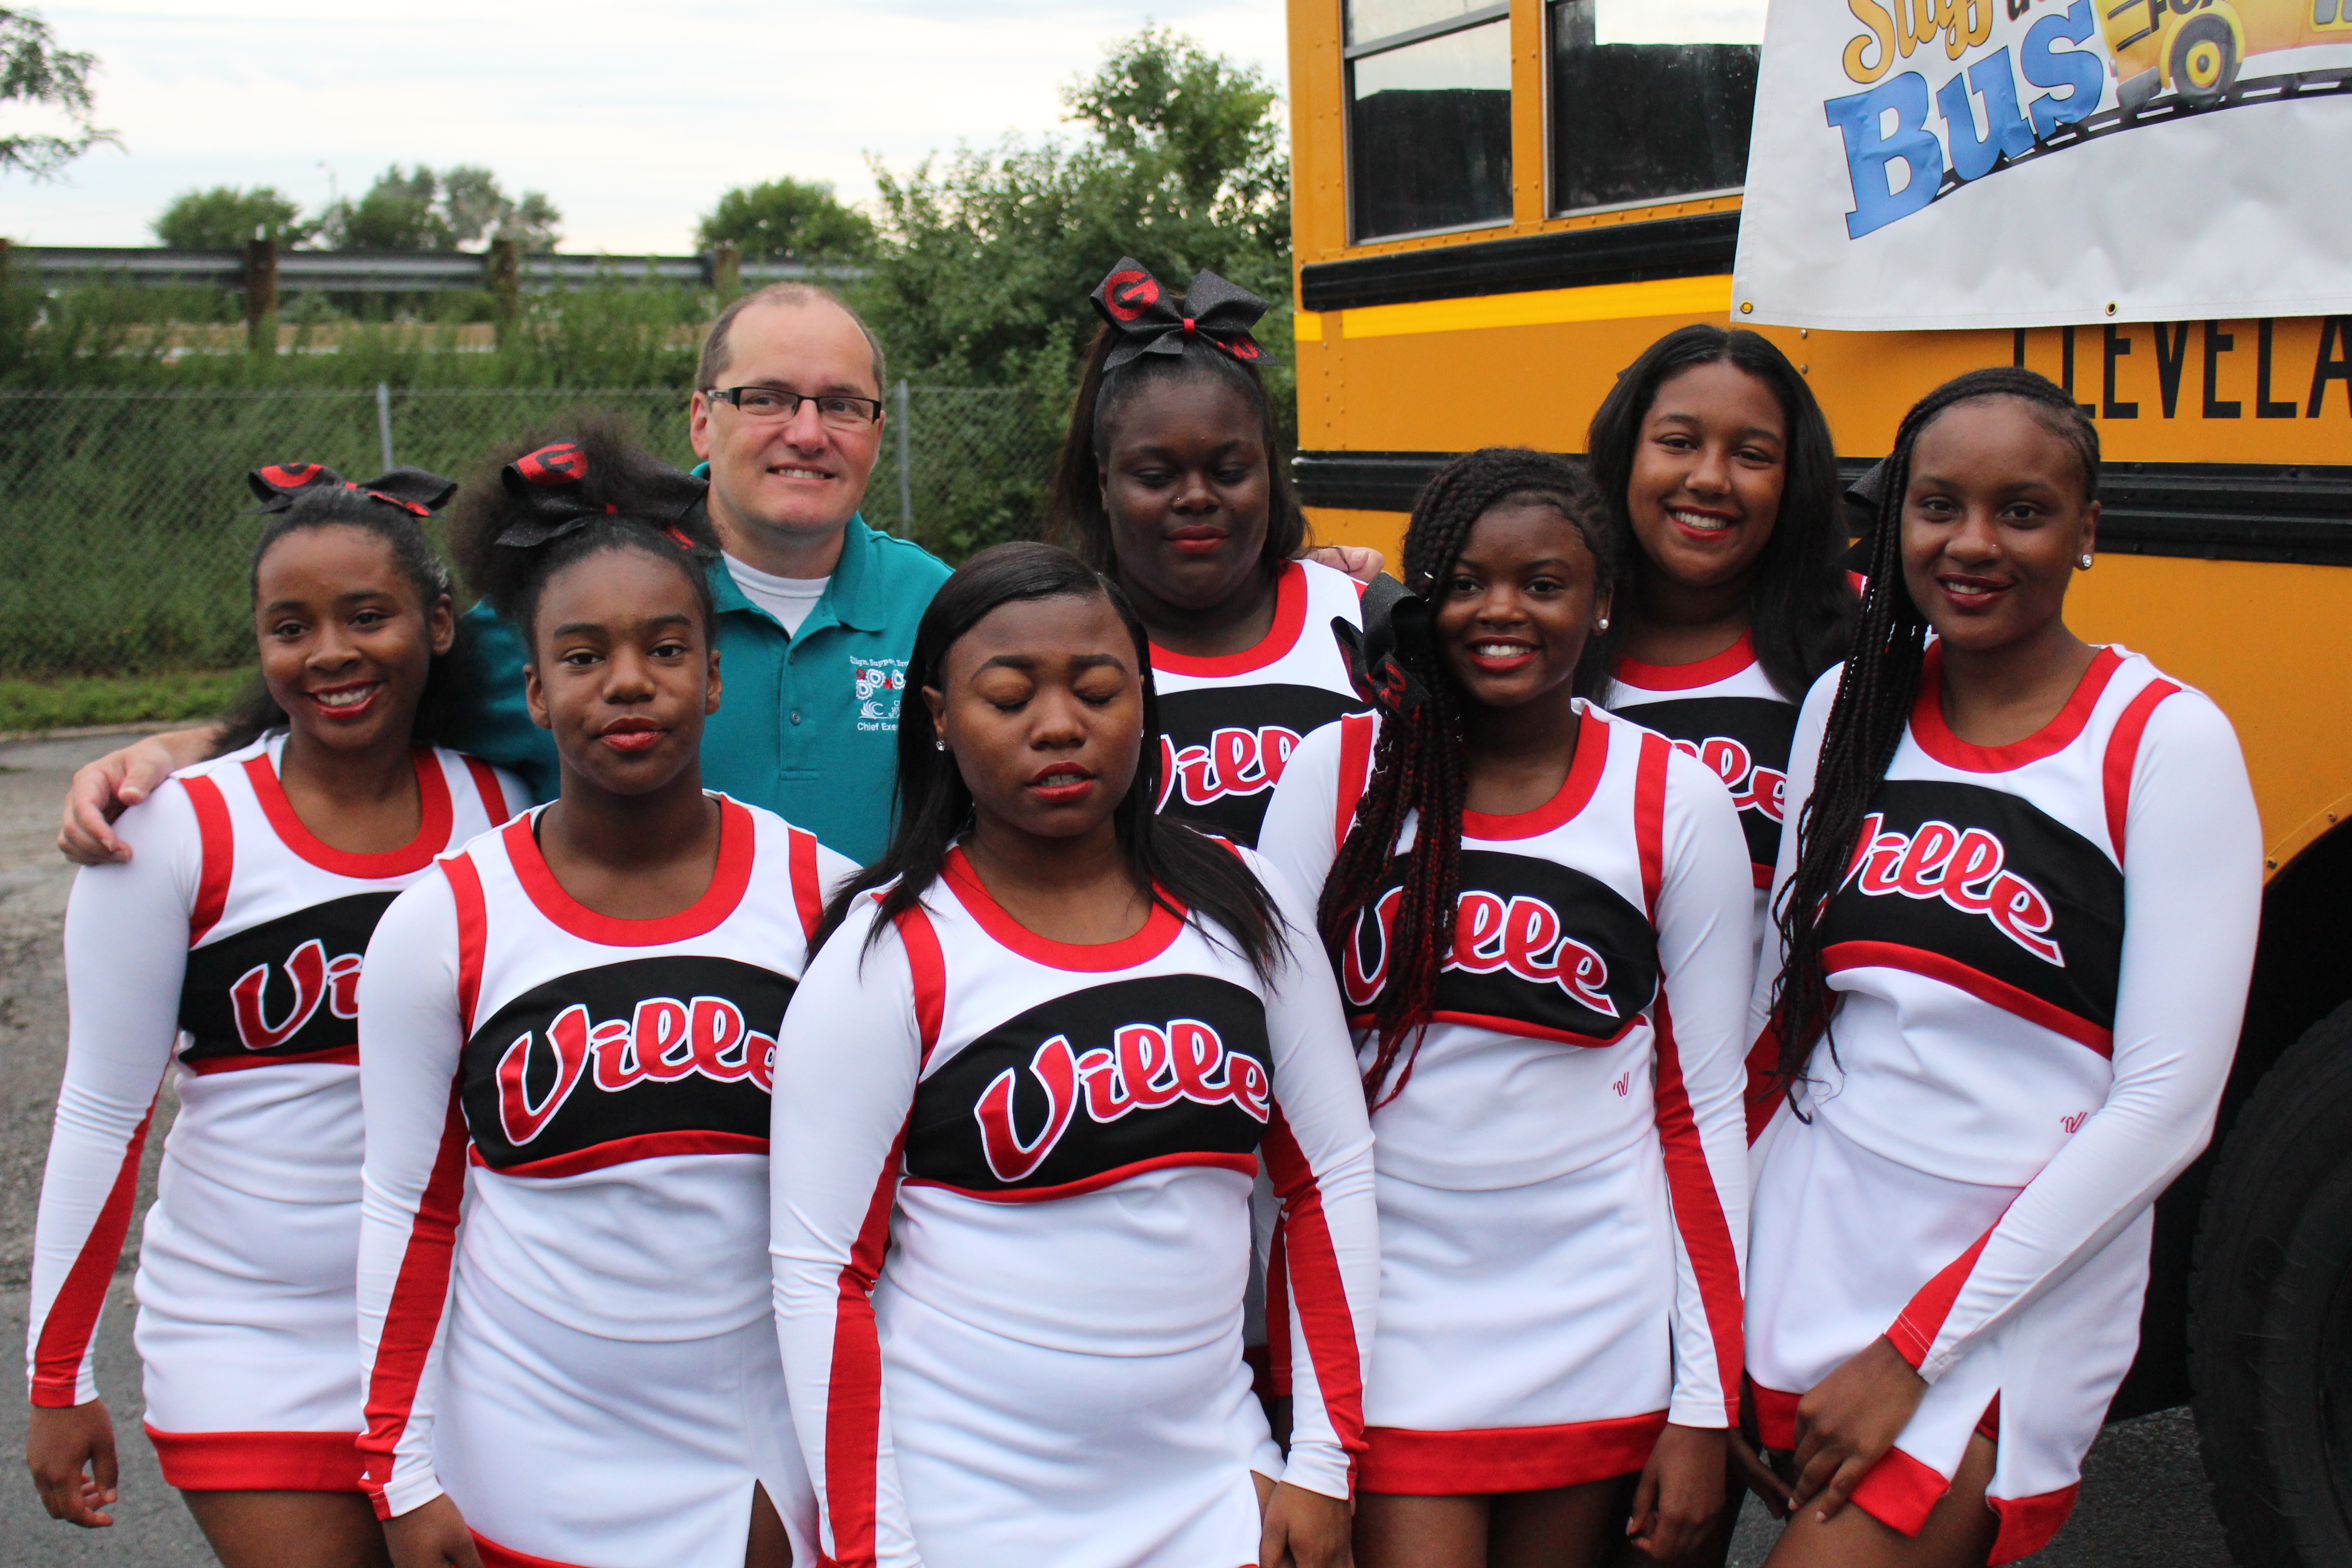 Glenville Cheerleaders Prepare for the Year-Stuff the Bus